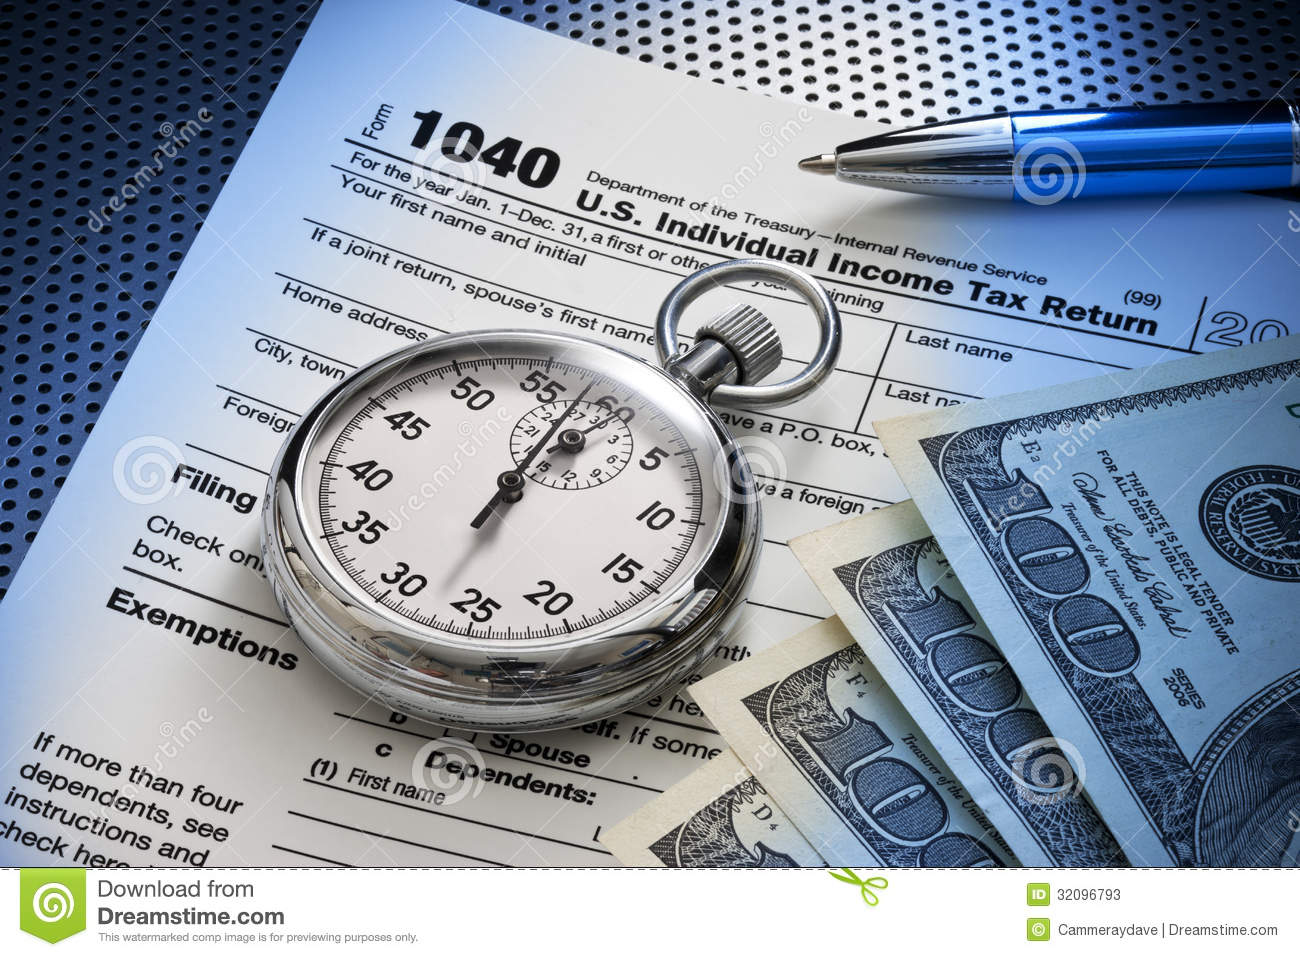 Still Life Of A Us 1040 Tax Form With Stopwatch Money And Pen